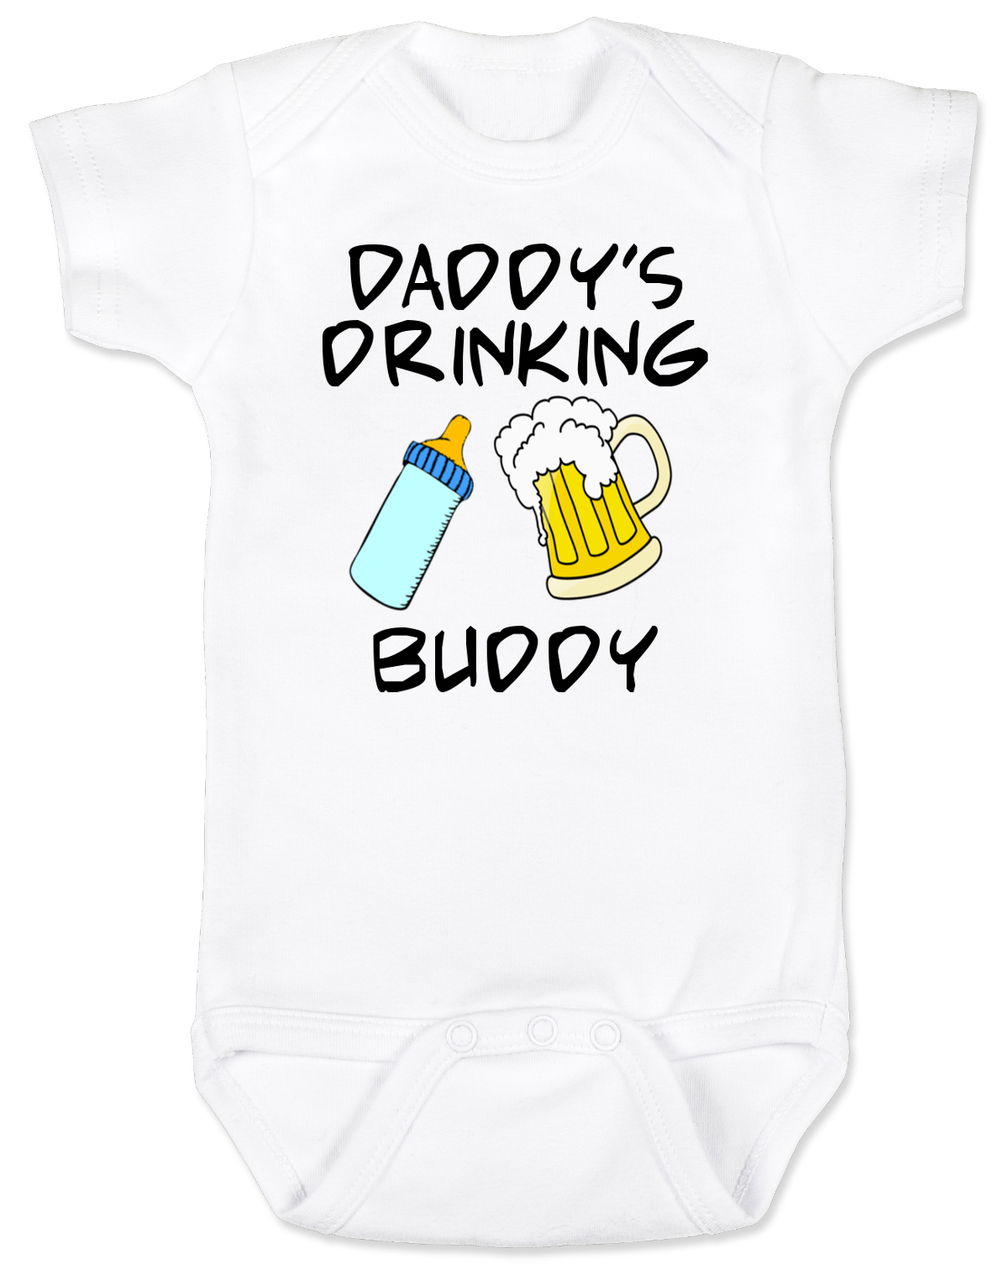 0174f8a66 Daddy's drinking buddy, Drinking buddies father and child, Dad's drinking  buddy baby Bodysuit,